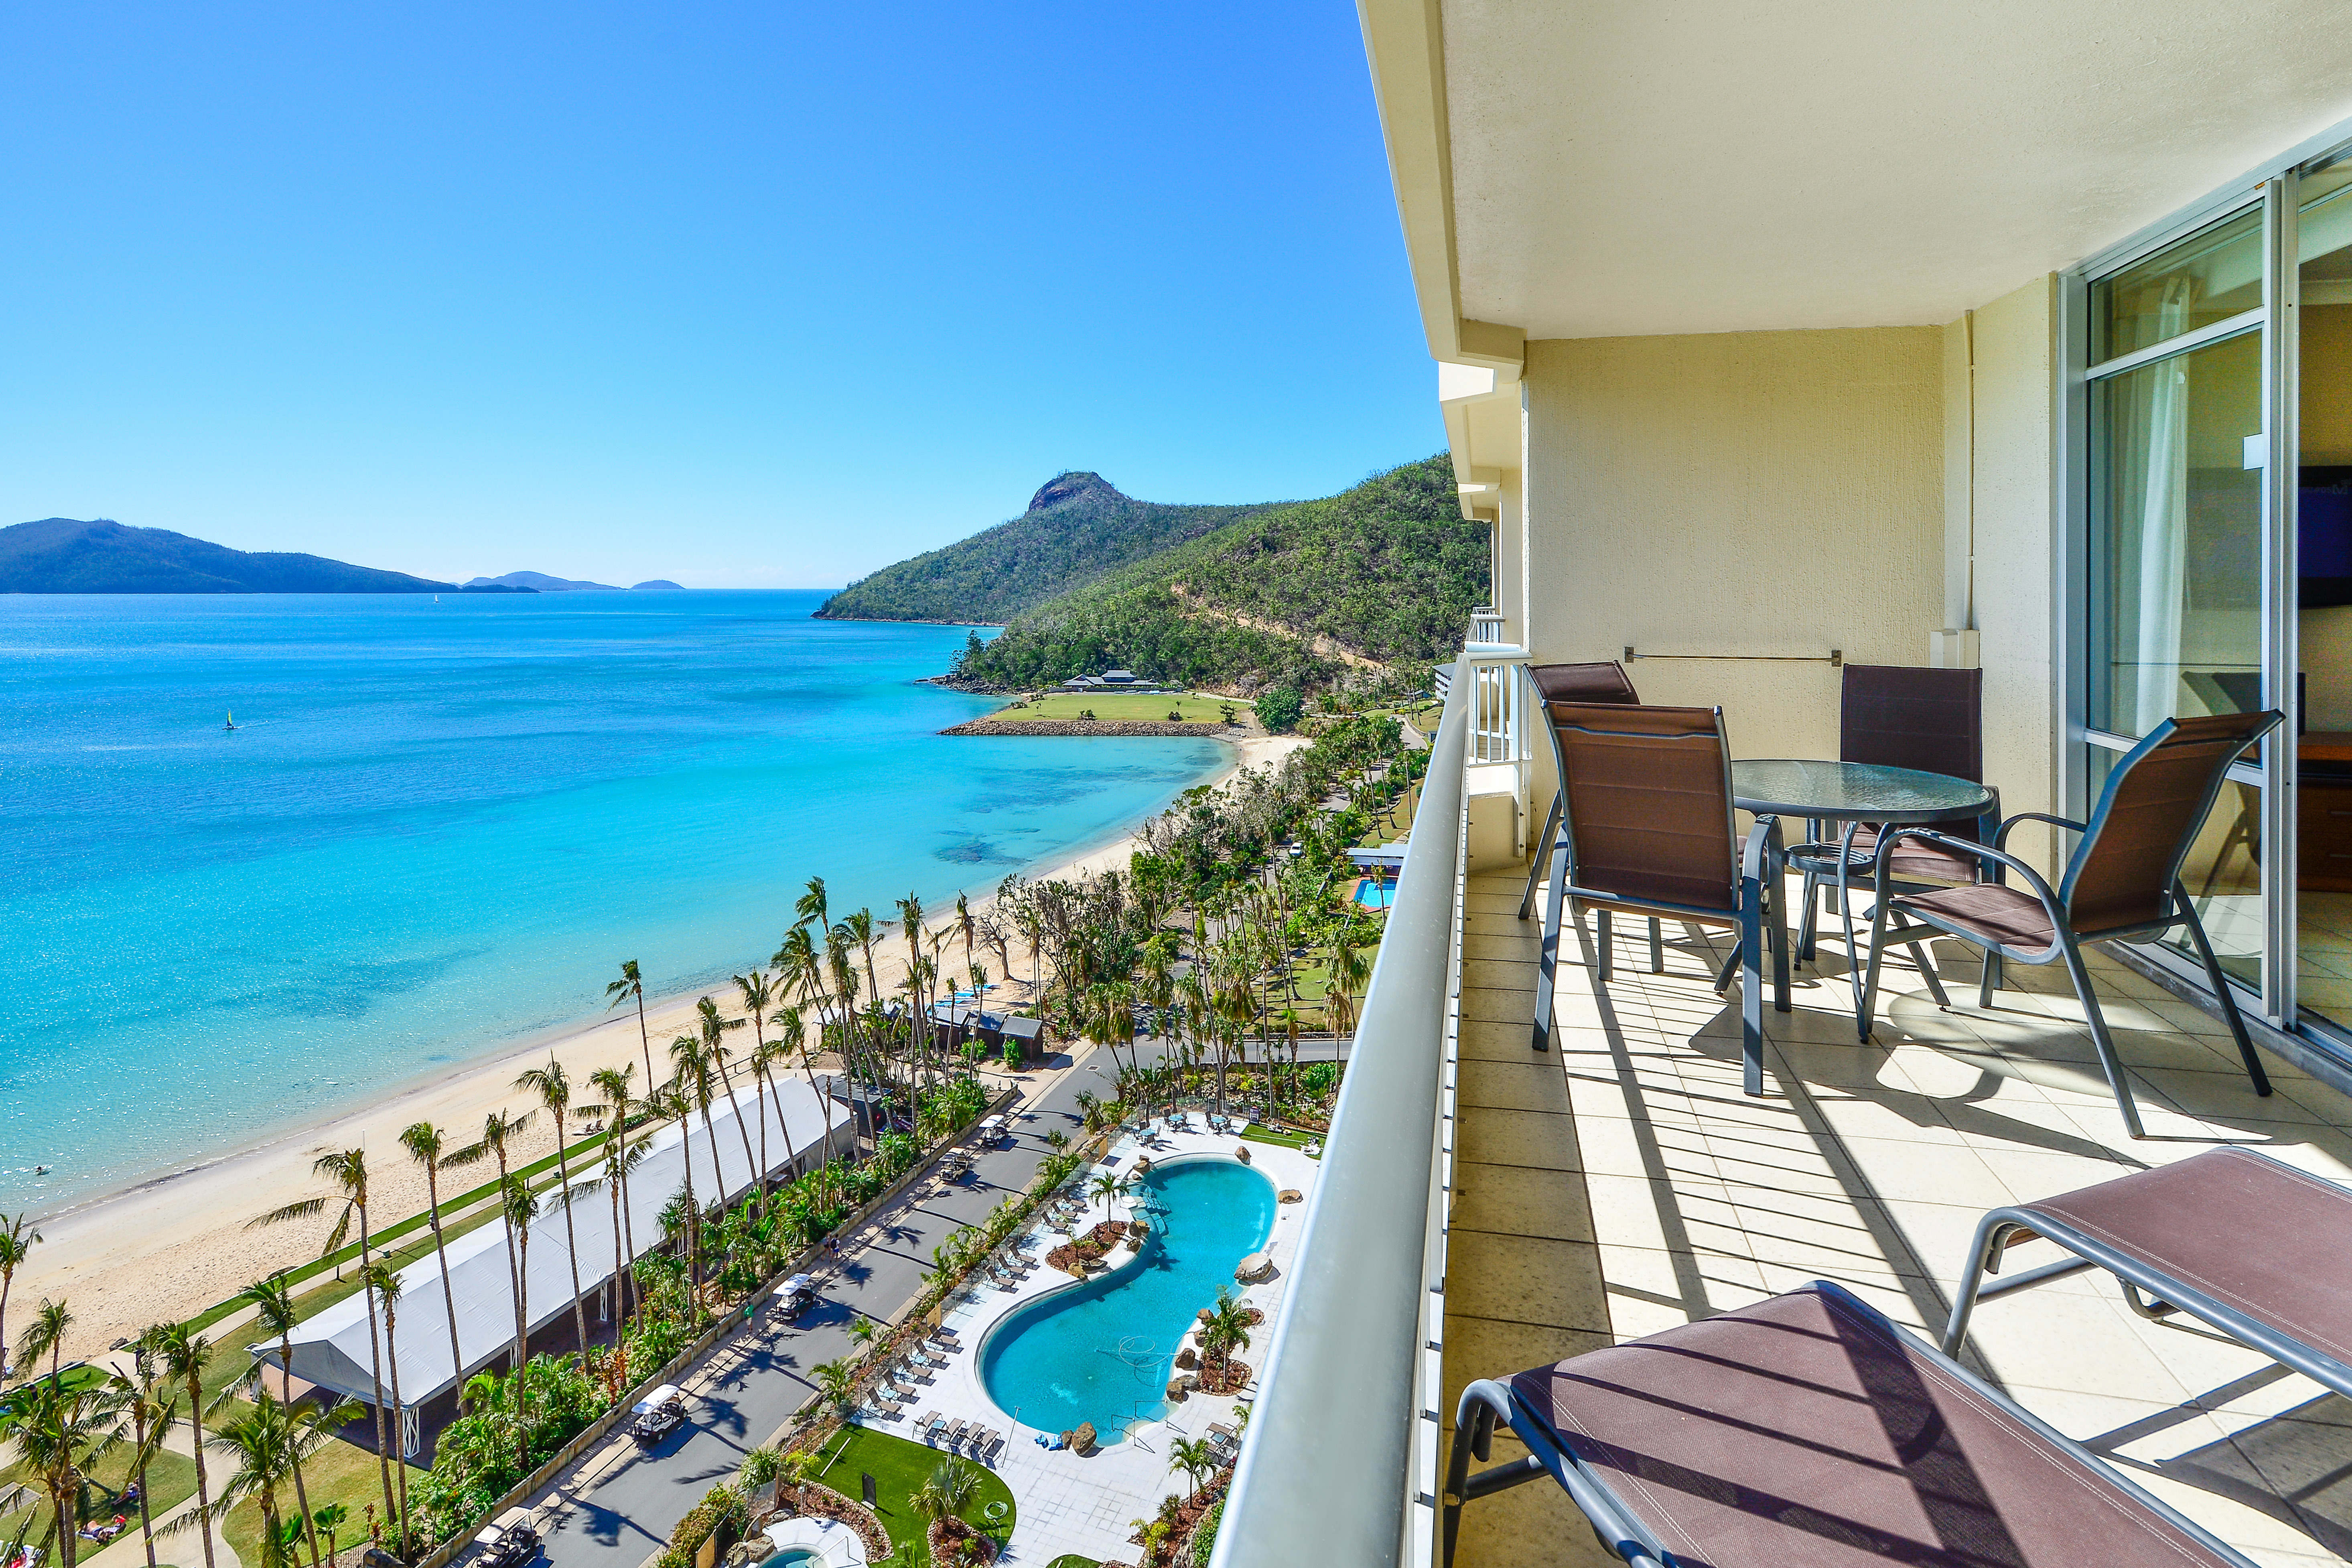 Real Estate For Sale - CA 1204 Whitsunday Apartment ...